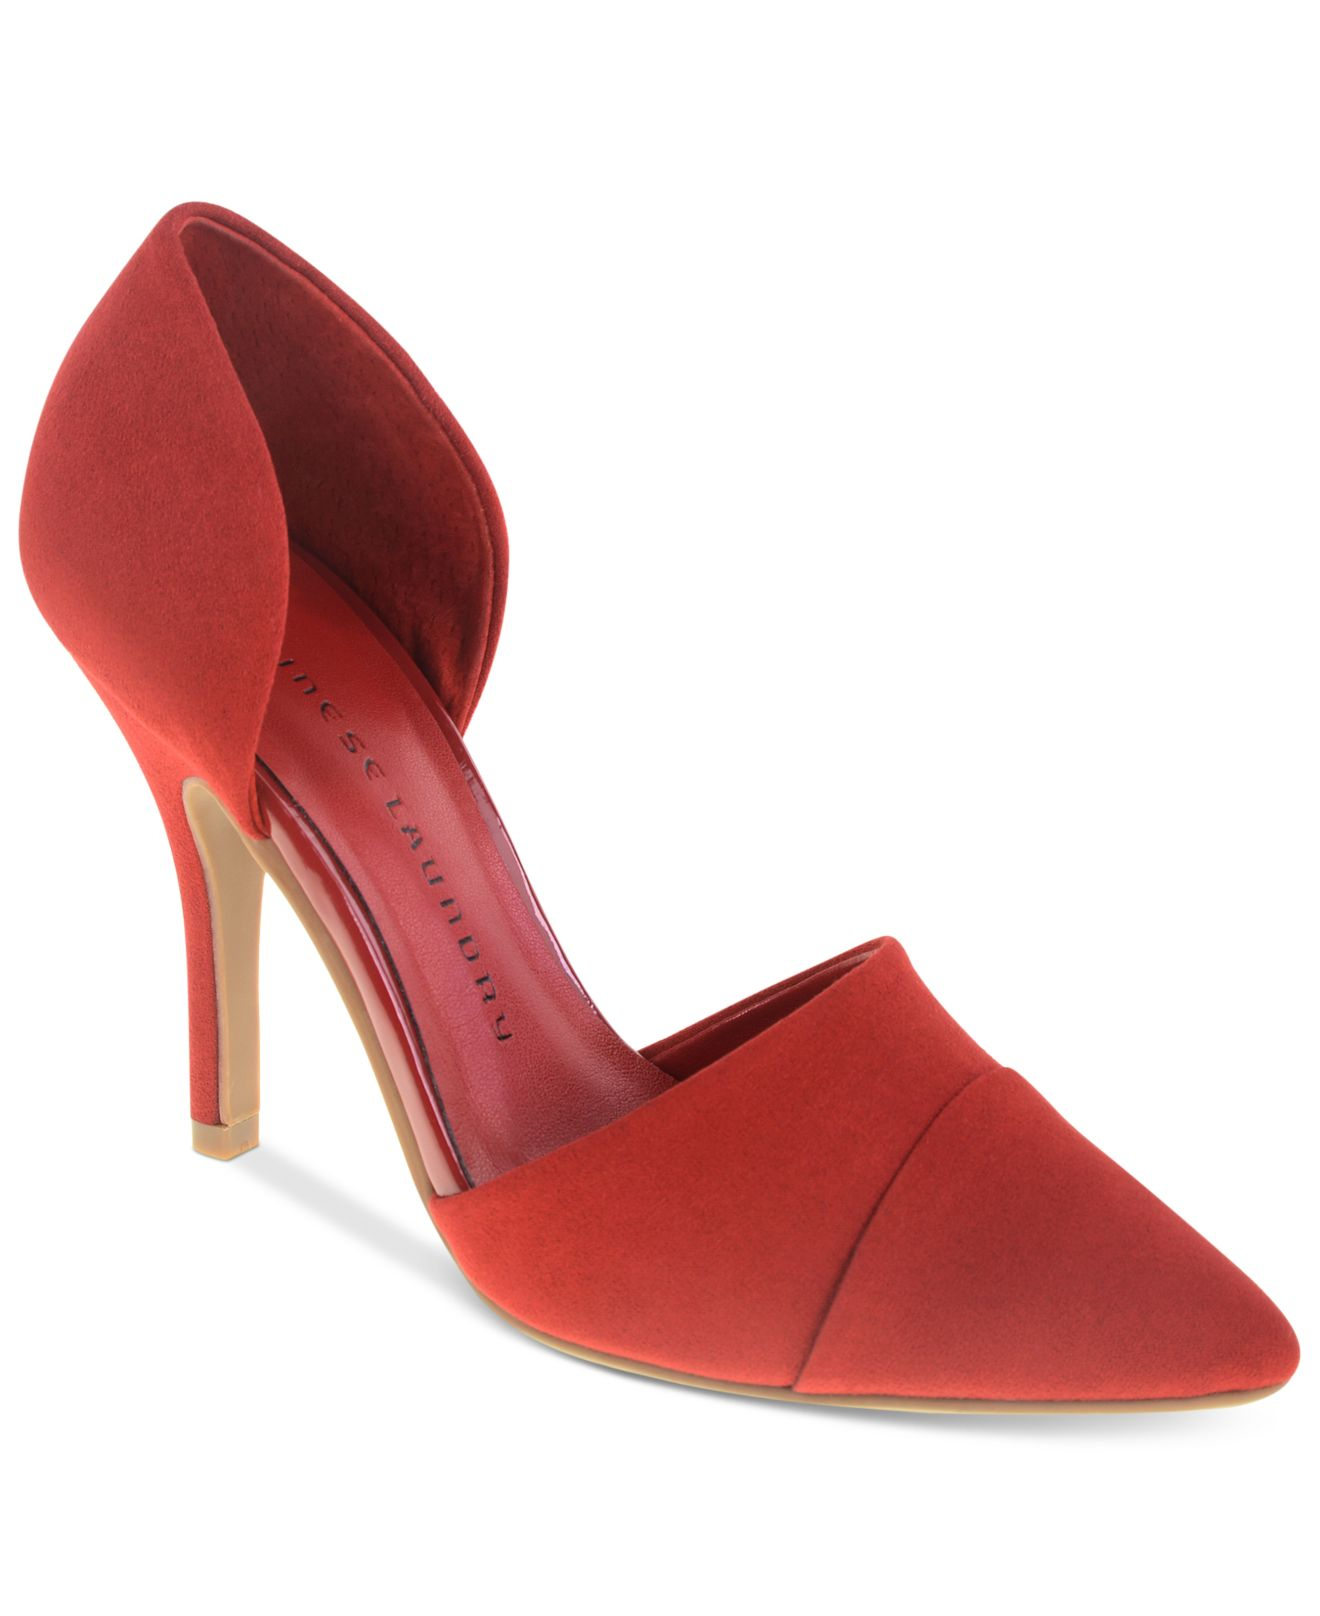 39d5804639 Chinese Laundry Sidekick D'Orsay Pumps in Red - Lyst